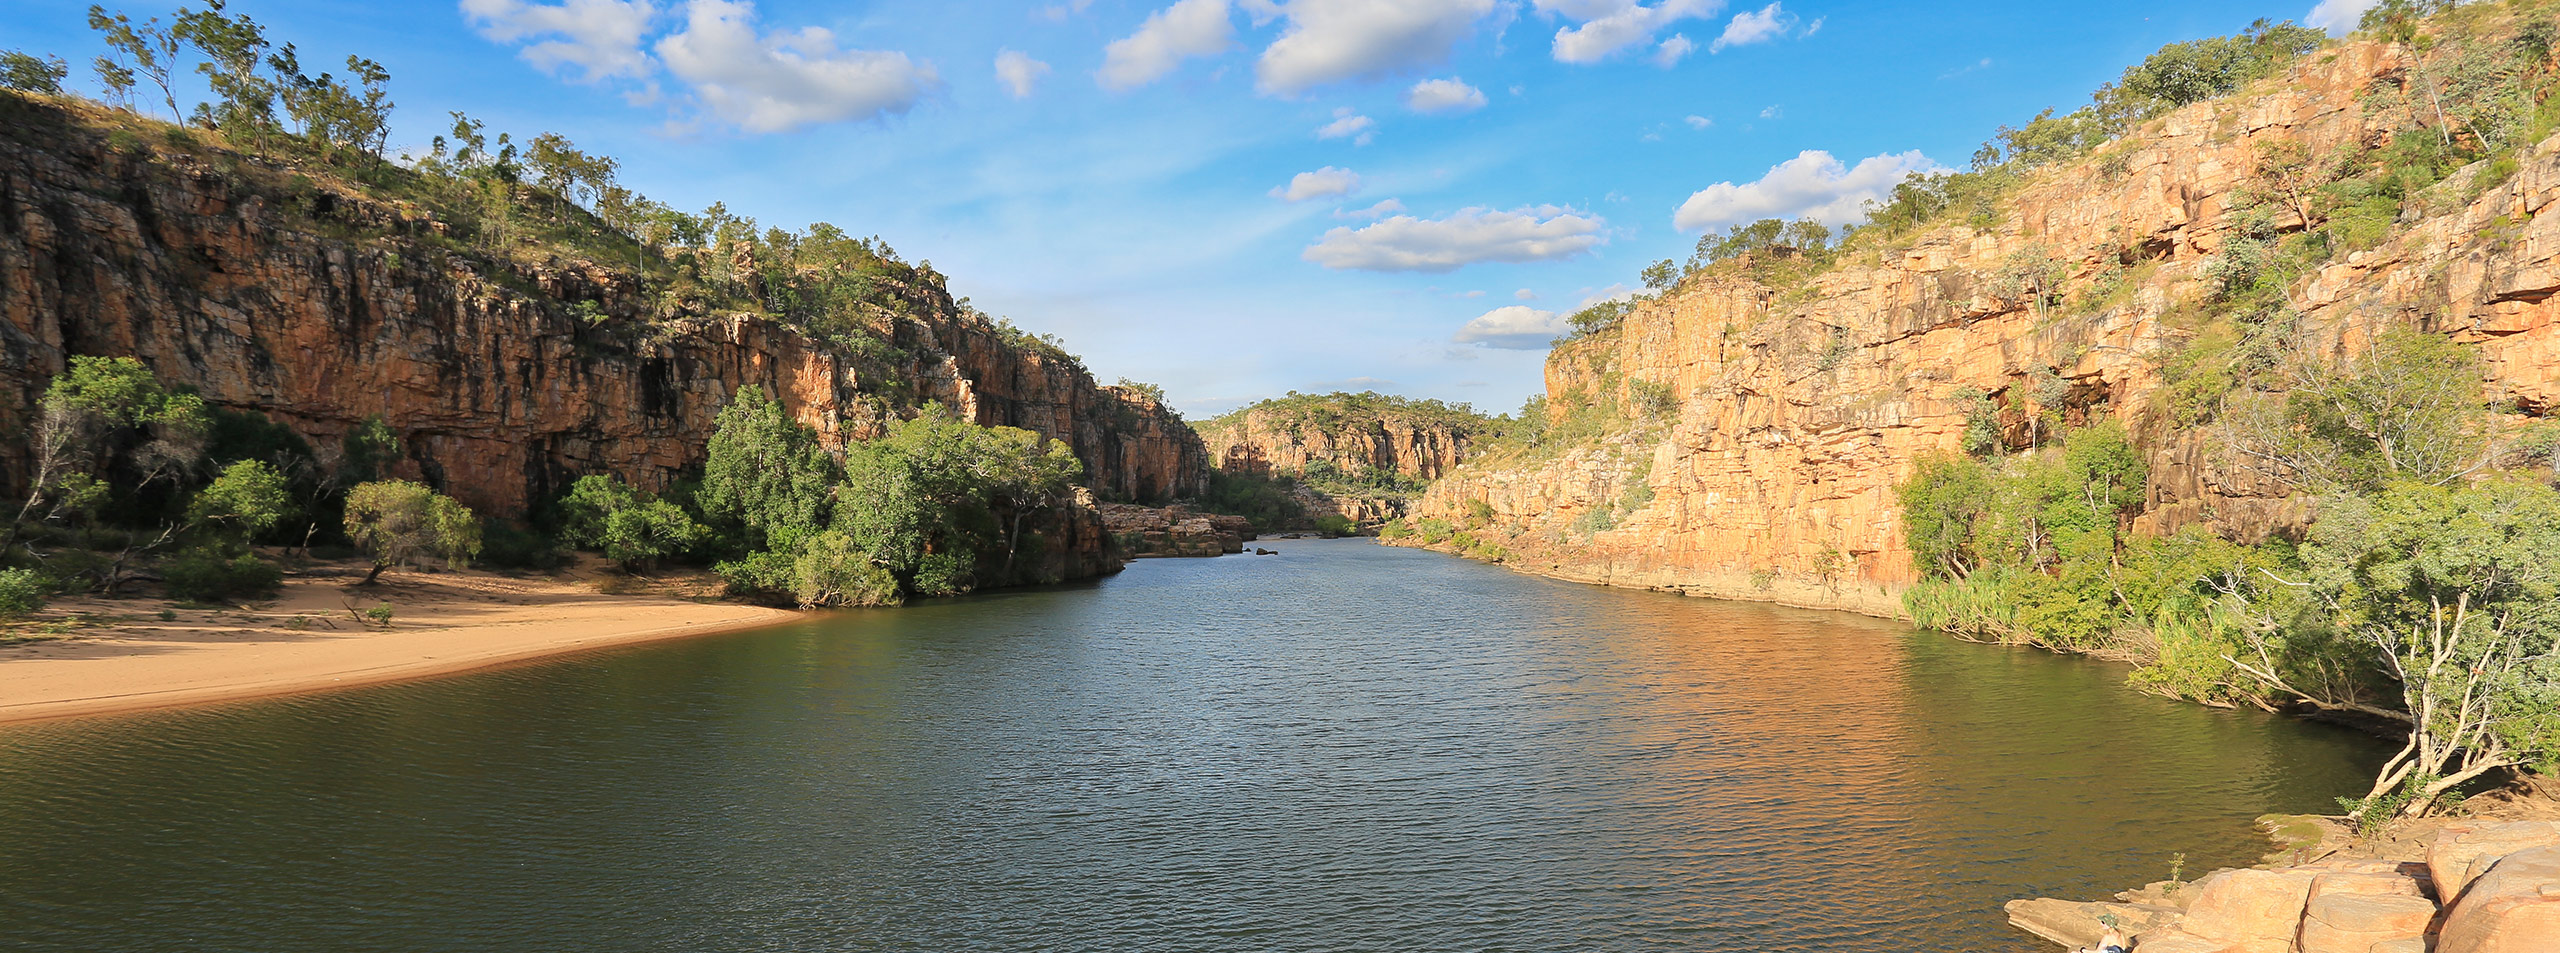 Katherine Gorge National Park